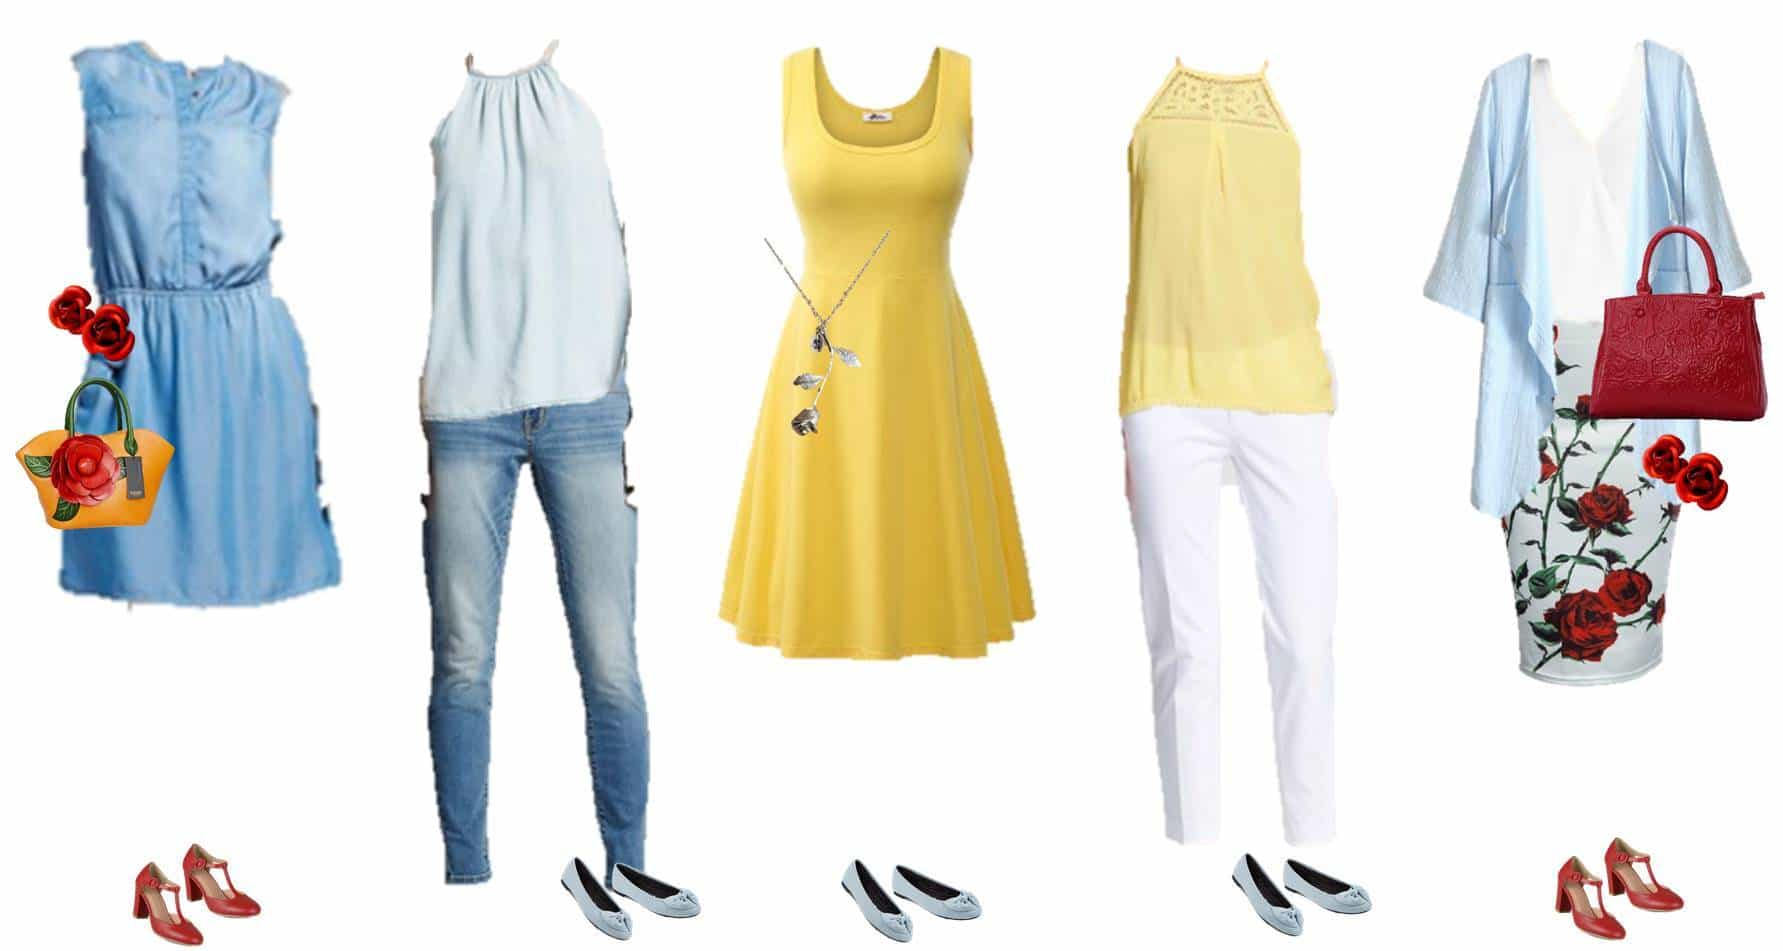 7.26 Mix & Match Fashion - Inspired by Belle 1-5